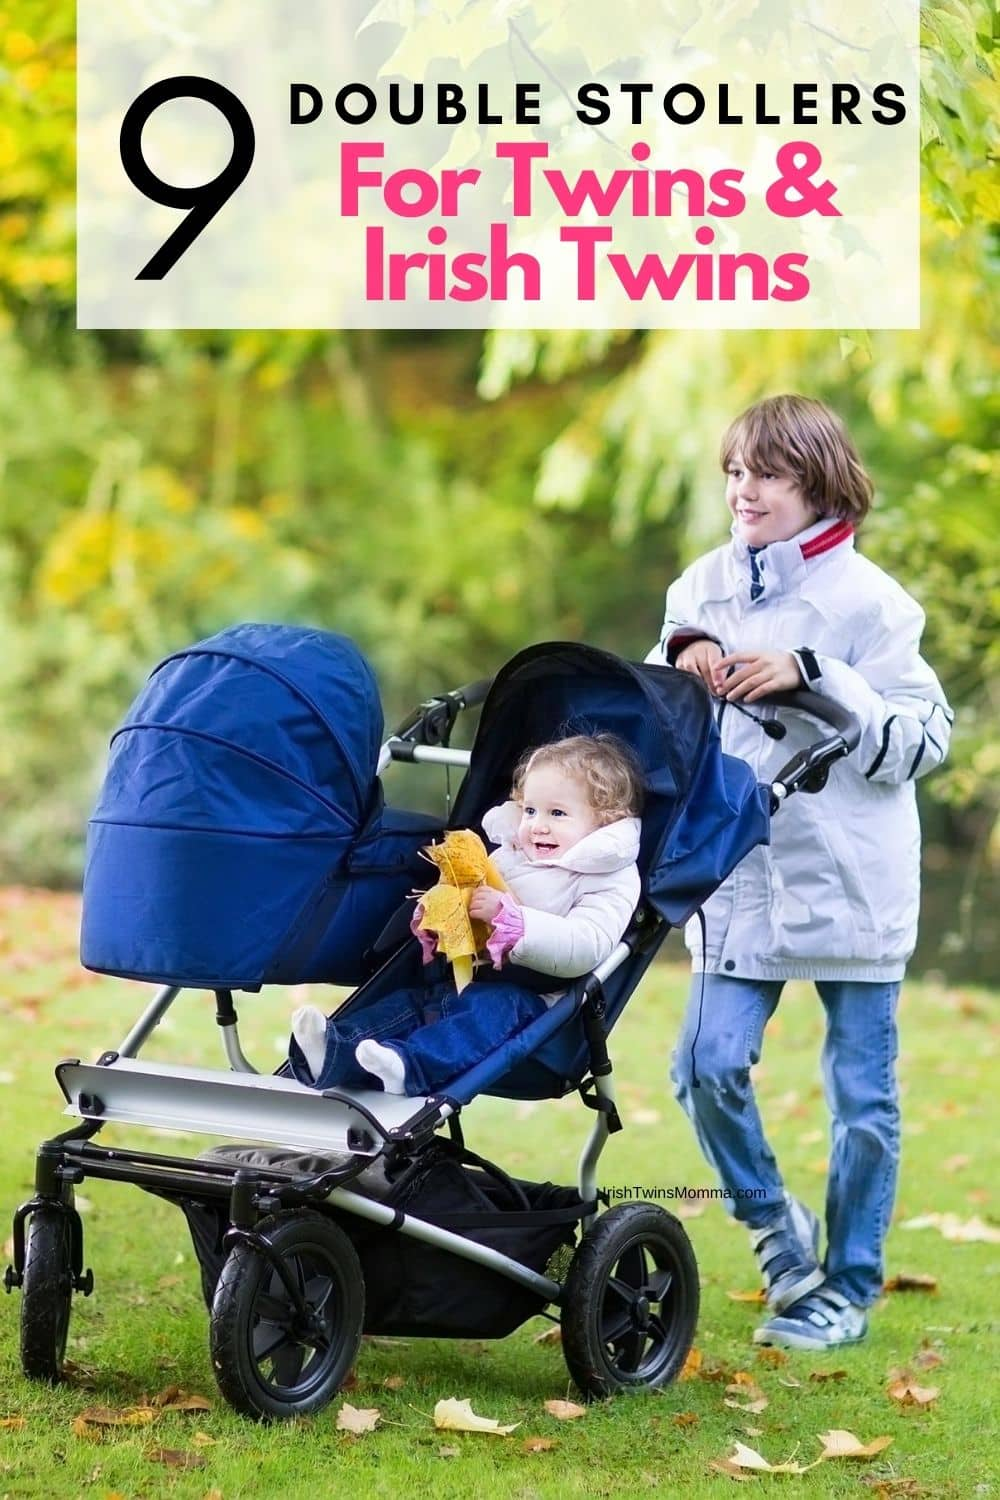 "Side by side strollers have a bit of a bad rap for being bulky and wide. While this can be true, they also offer the best options when it comes to how well a stroller ""drives"" and maneuverability on various terrains. They also allow your children to sit forward-facing and next to each other, promoting more interaction with their surroundings and one another. via @irishtwinsmom11"